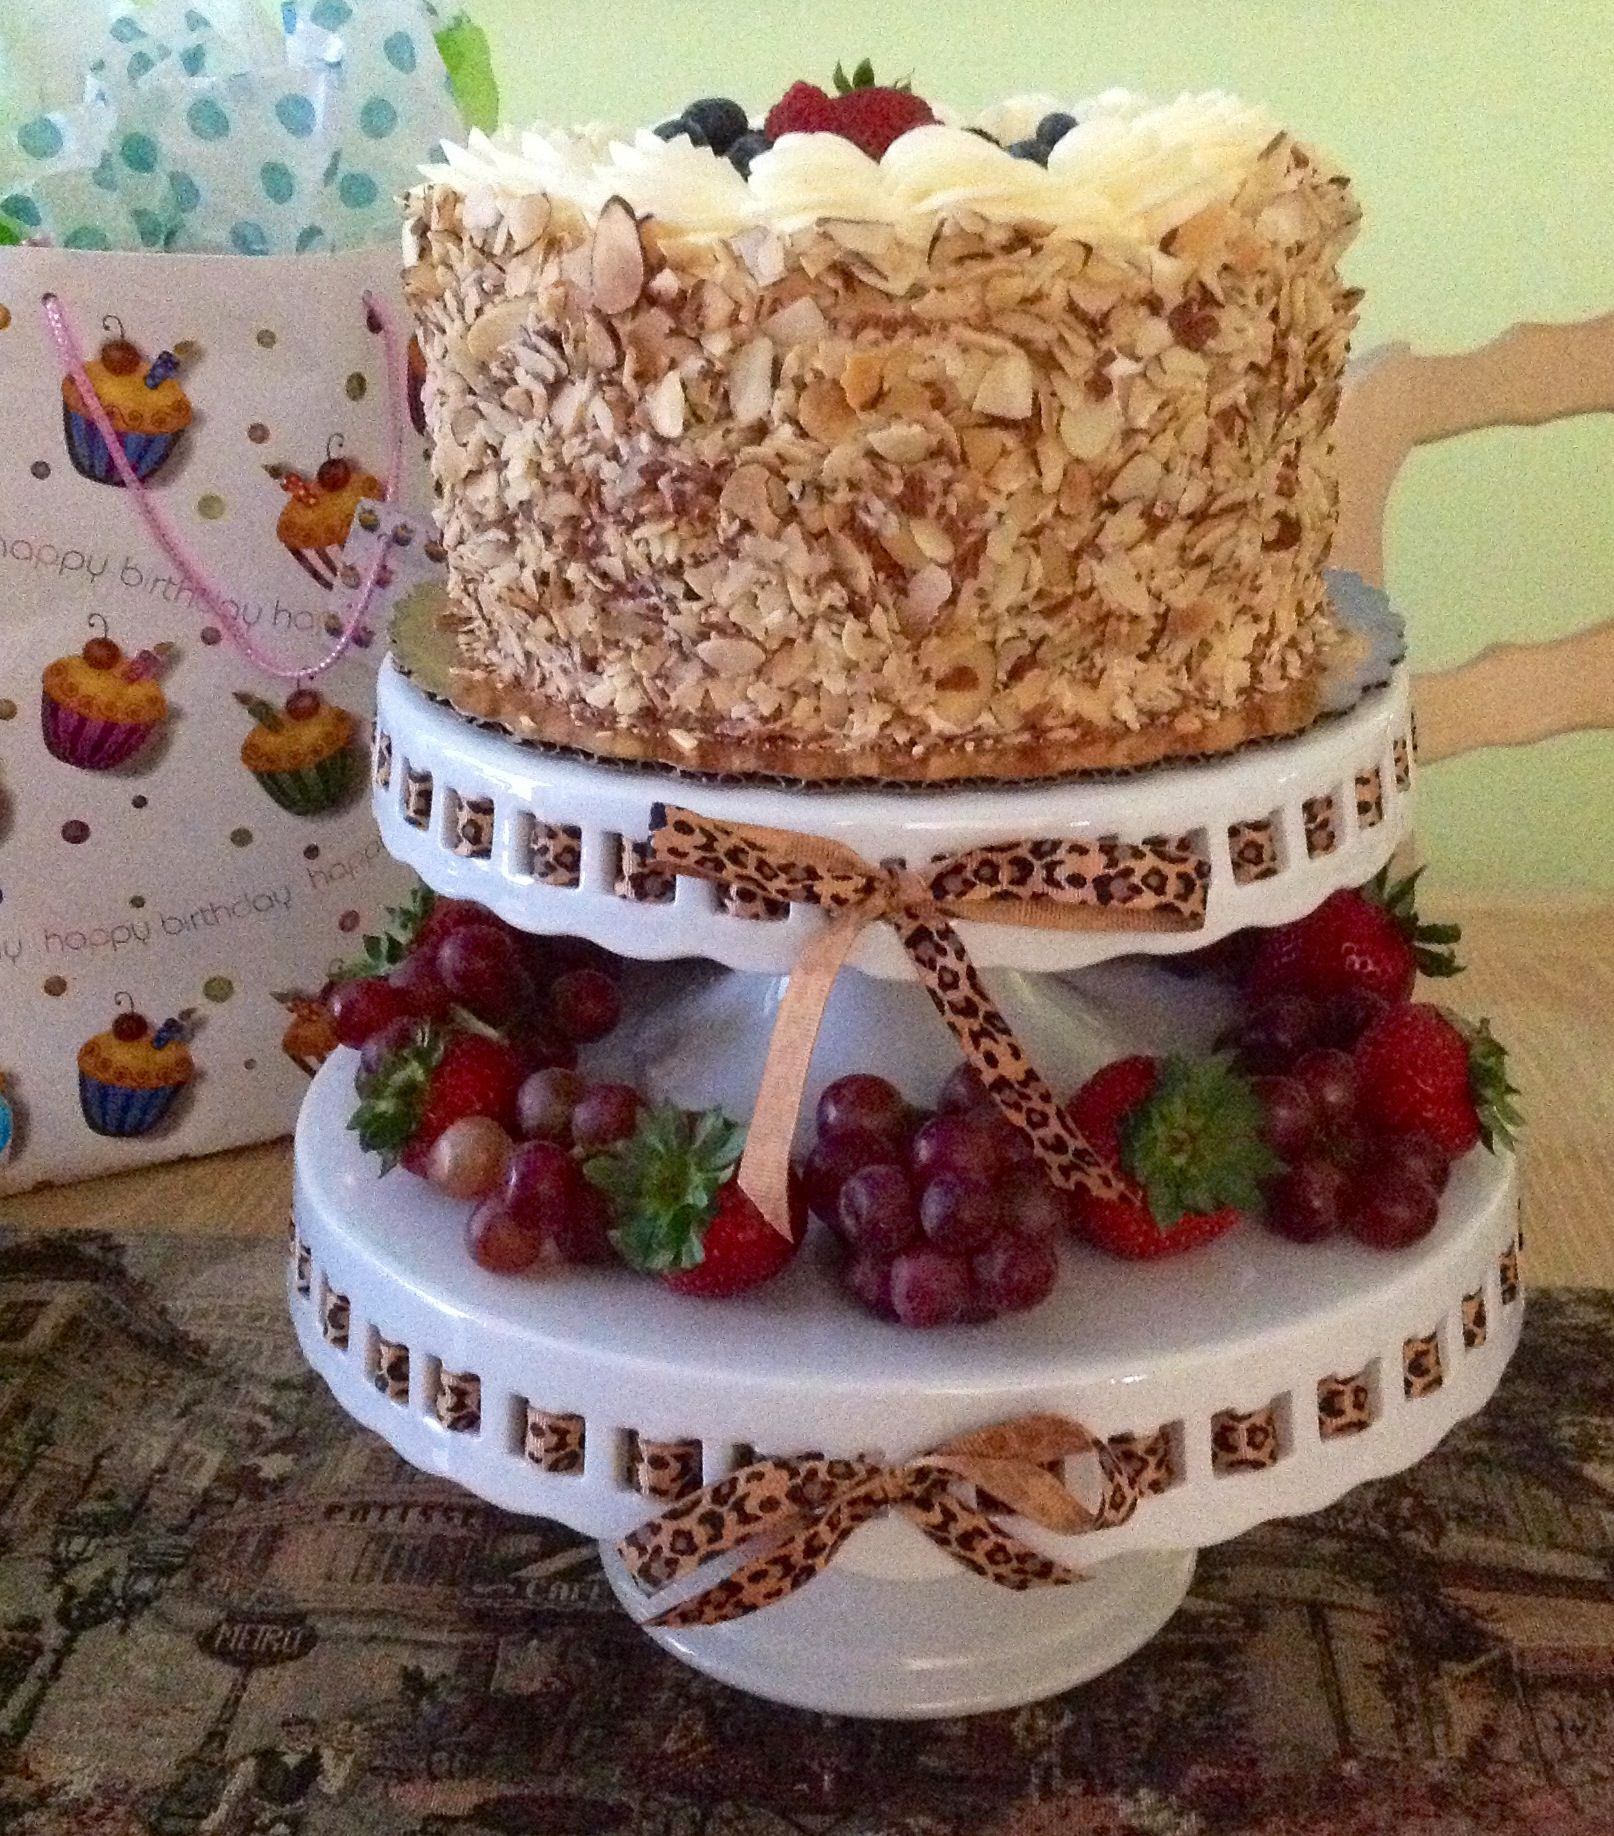 whole foods berry cake - 28 images - whole foods birthday cakes ...